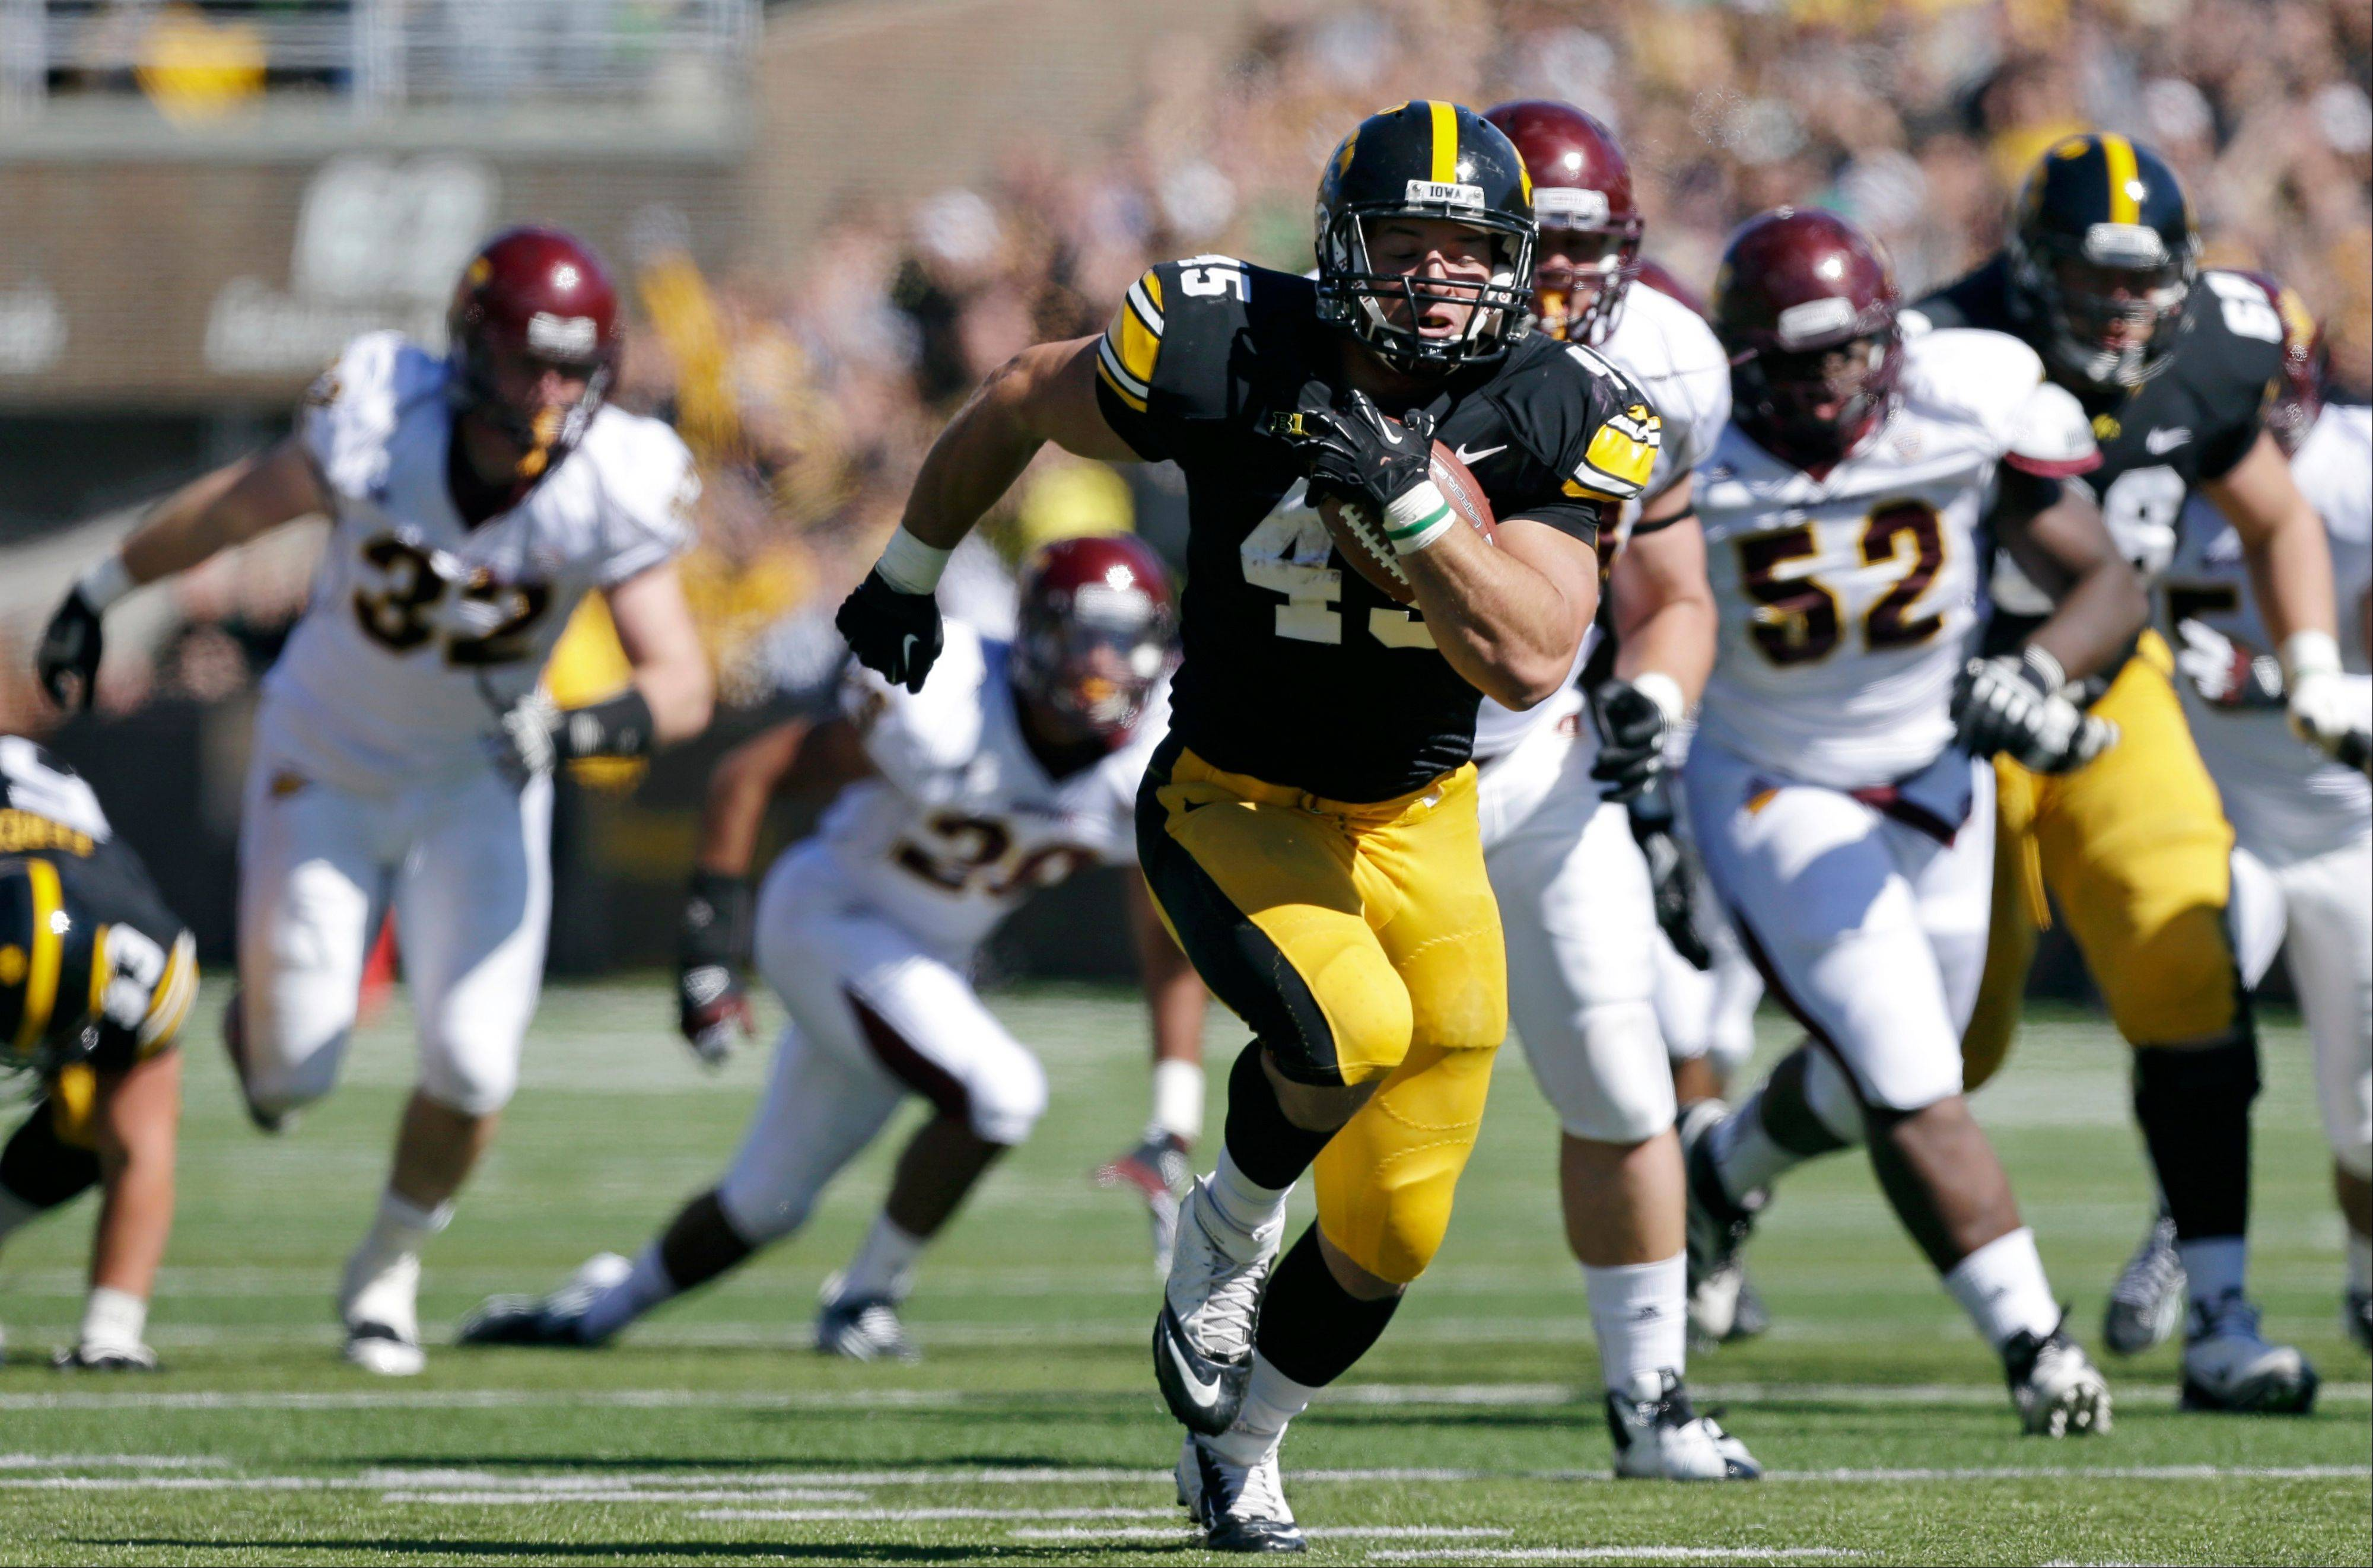 FILE - In this Sept. 22, 2012 file photo, Iowa fullback Mark Weisman runs for a 34-yard touchdown run during the first half of an NCAA college football game against Central Michigan, in Iowa City, Iowa. One of the few bright spots for Iowa last season was the emergence of Weisman, a former walk-on fullback who showed he could be among the Big Ten's best ball carriers _ when healthy.